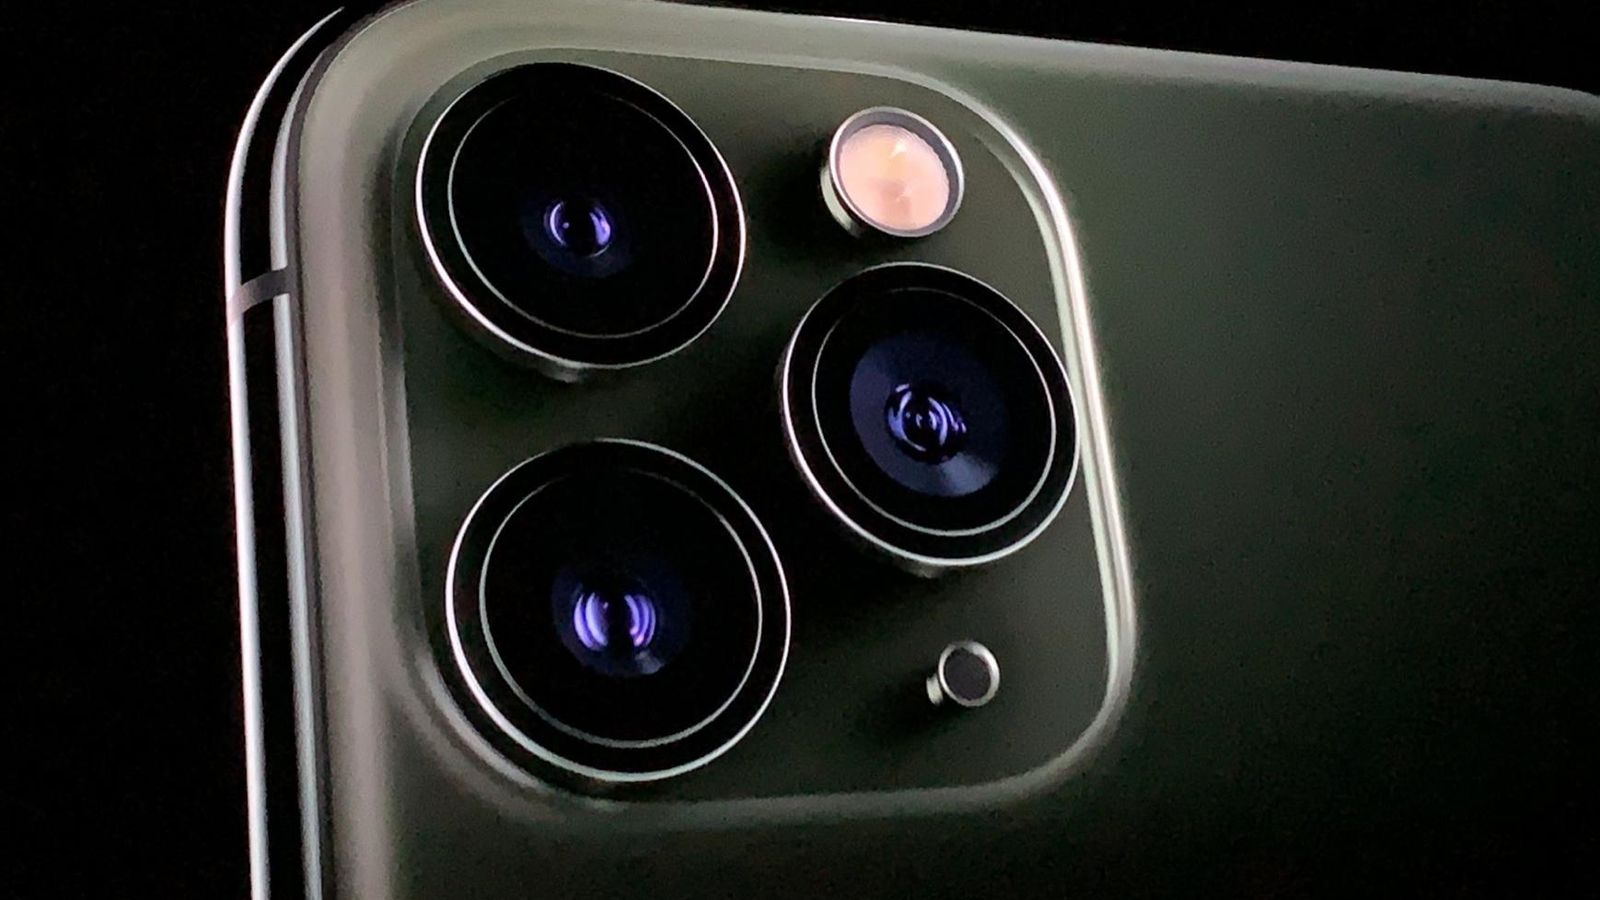 New Iphone 11 Pro Camera Triggers Trypophobia Fear Of Tiny